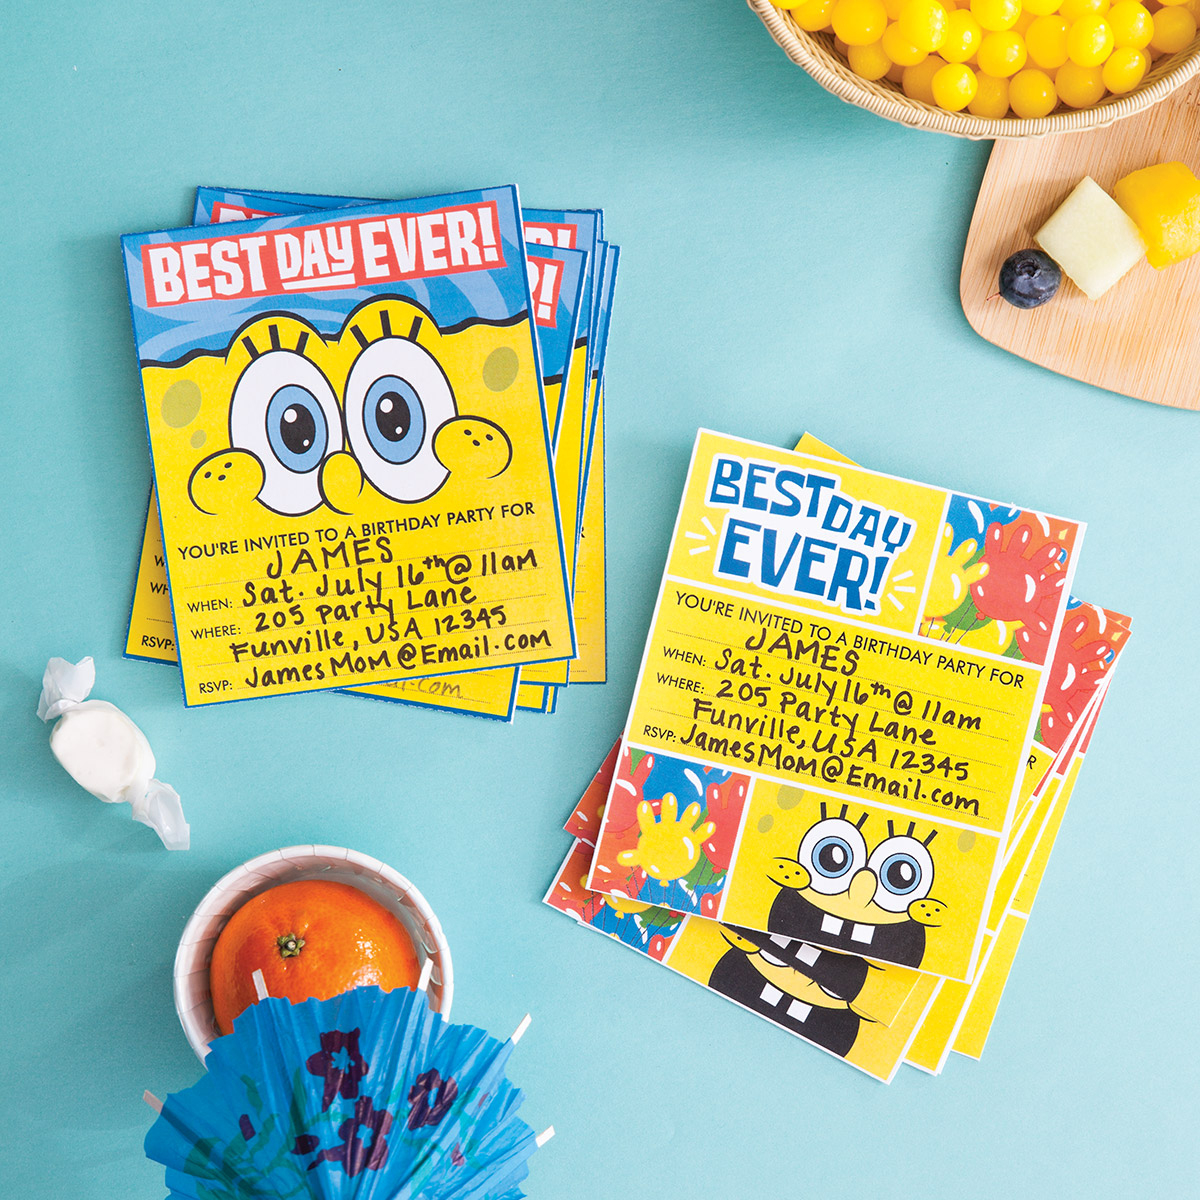 Plan A Spongebob Squarepants Party | Nickelodeon Parents - Spongebob Free Printable Invitations